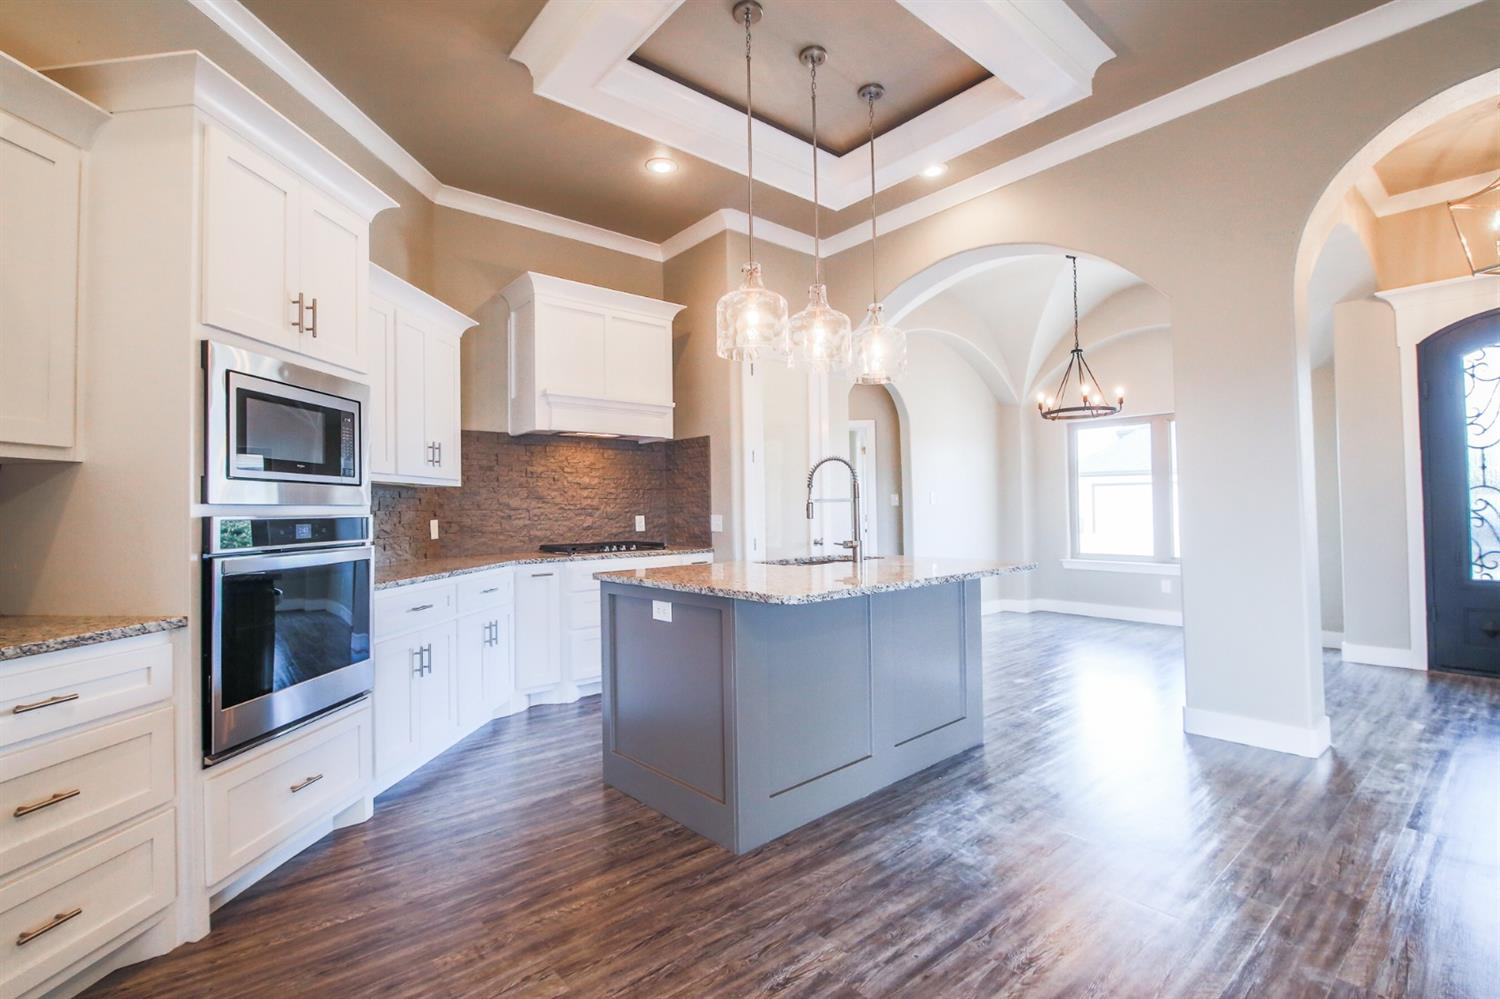 Beautiful 4/3/2 in Valencia! Exceptional amenities throughout: Iron Front Door, Special Ceiling details, Granite counters in kitchen and 3 baths, Isolated master retreat w/ Spa inspired en suite and a 2nd isolated master w/ private bath. The additional guest rooms share a hall bath and are adjacent to an office/ homework nook. You will love how this plan is follows the curves of the extra wide lot! Enjoy time with family and friends on the expansive back patio. Welcome Home!